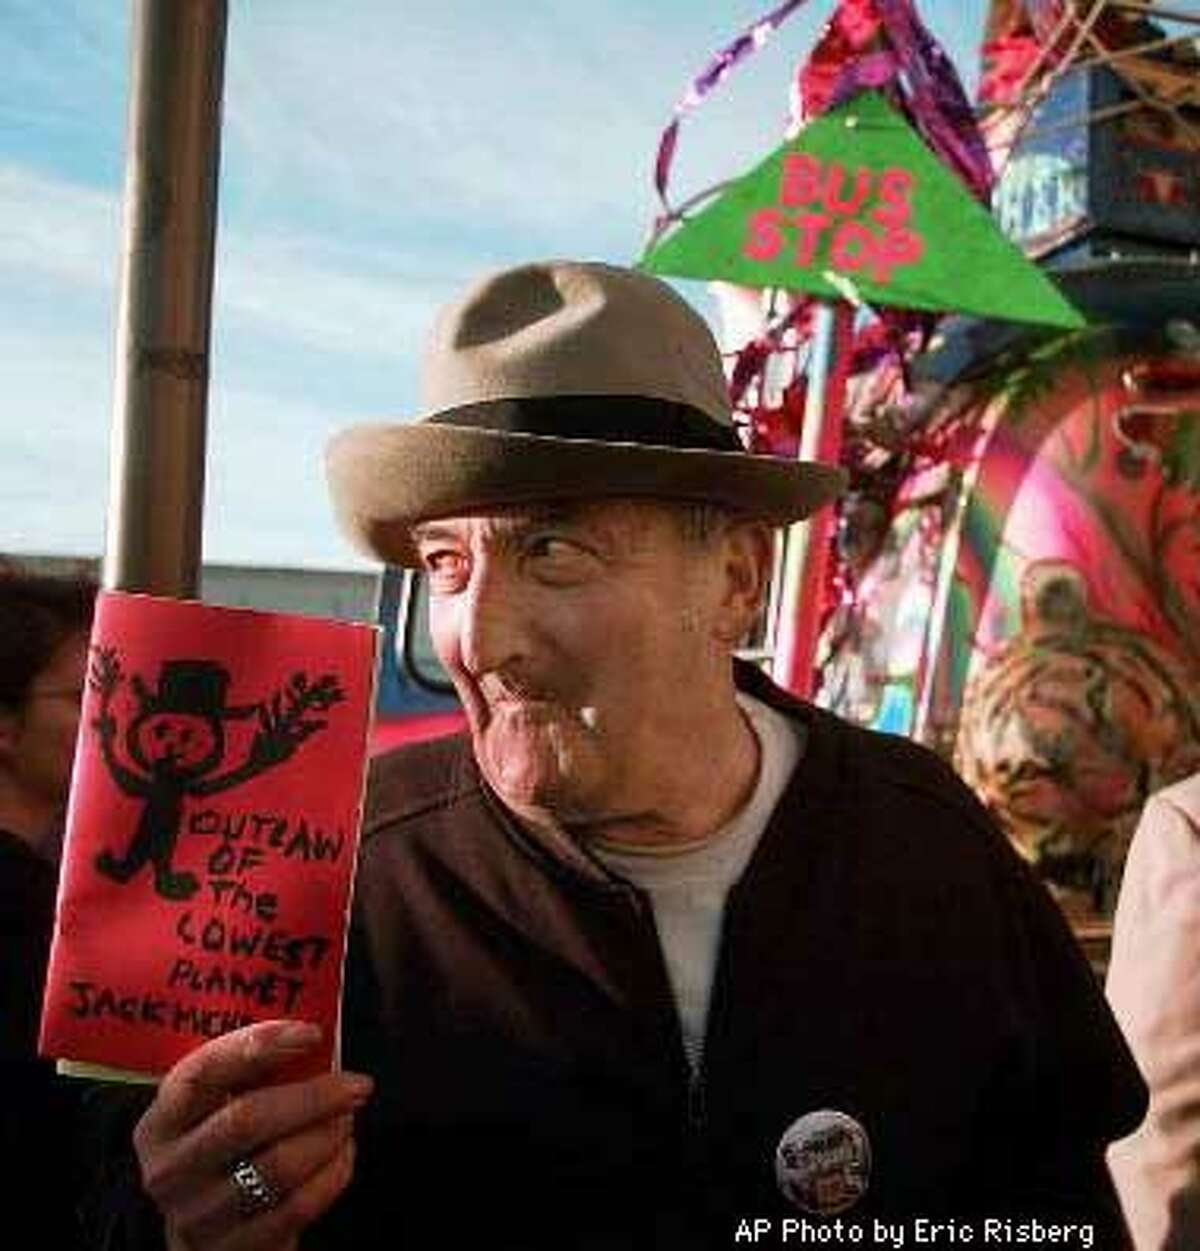 Beat poet Jack Micheline of San Francisco, shows off some of his published work to those attending the psychedelic-era reunion party at the historic Fillmore Auditorium in San Francisco, Monday April 28, 1997. In the background is the bus Furthur. The party celebrates an upcoming exhibit this summer at the Rock and Roll Hall of Fame in Cleveland on the 30th anniversary of the